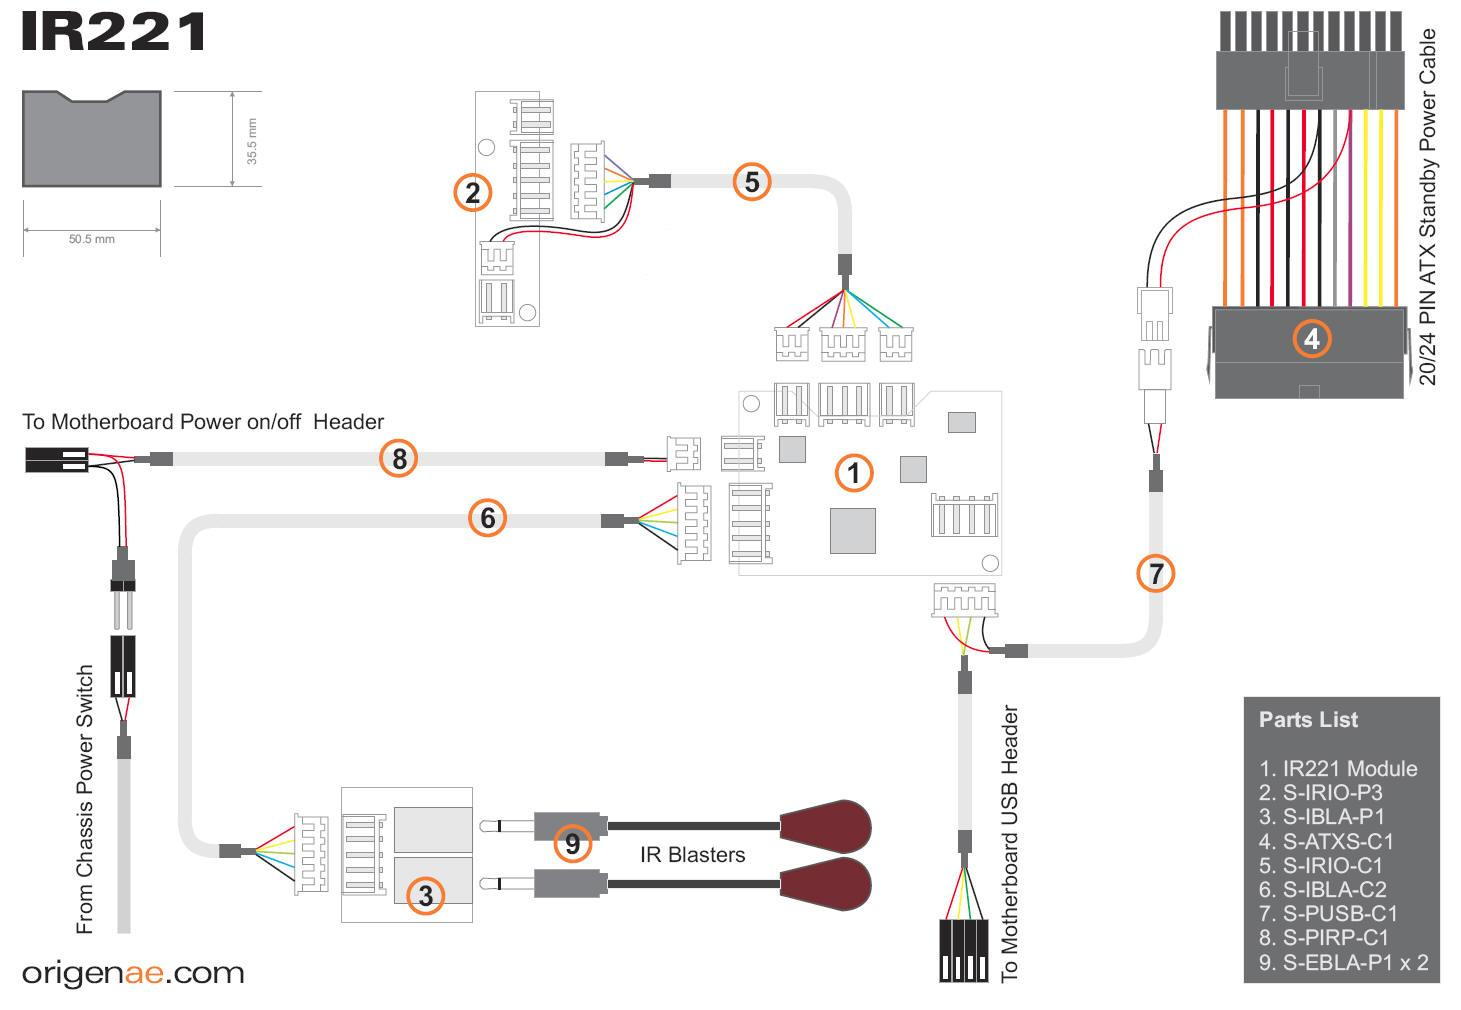 sata to usb cable wiring pinout diagram get free image about wiring diagram